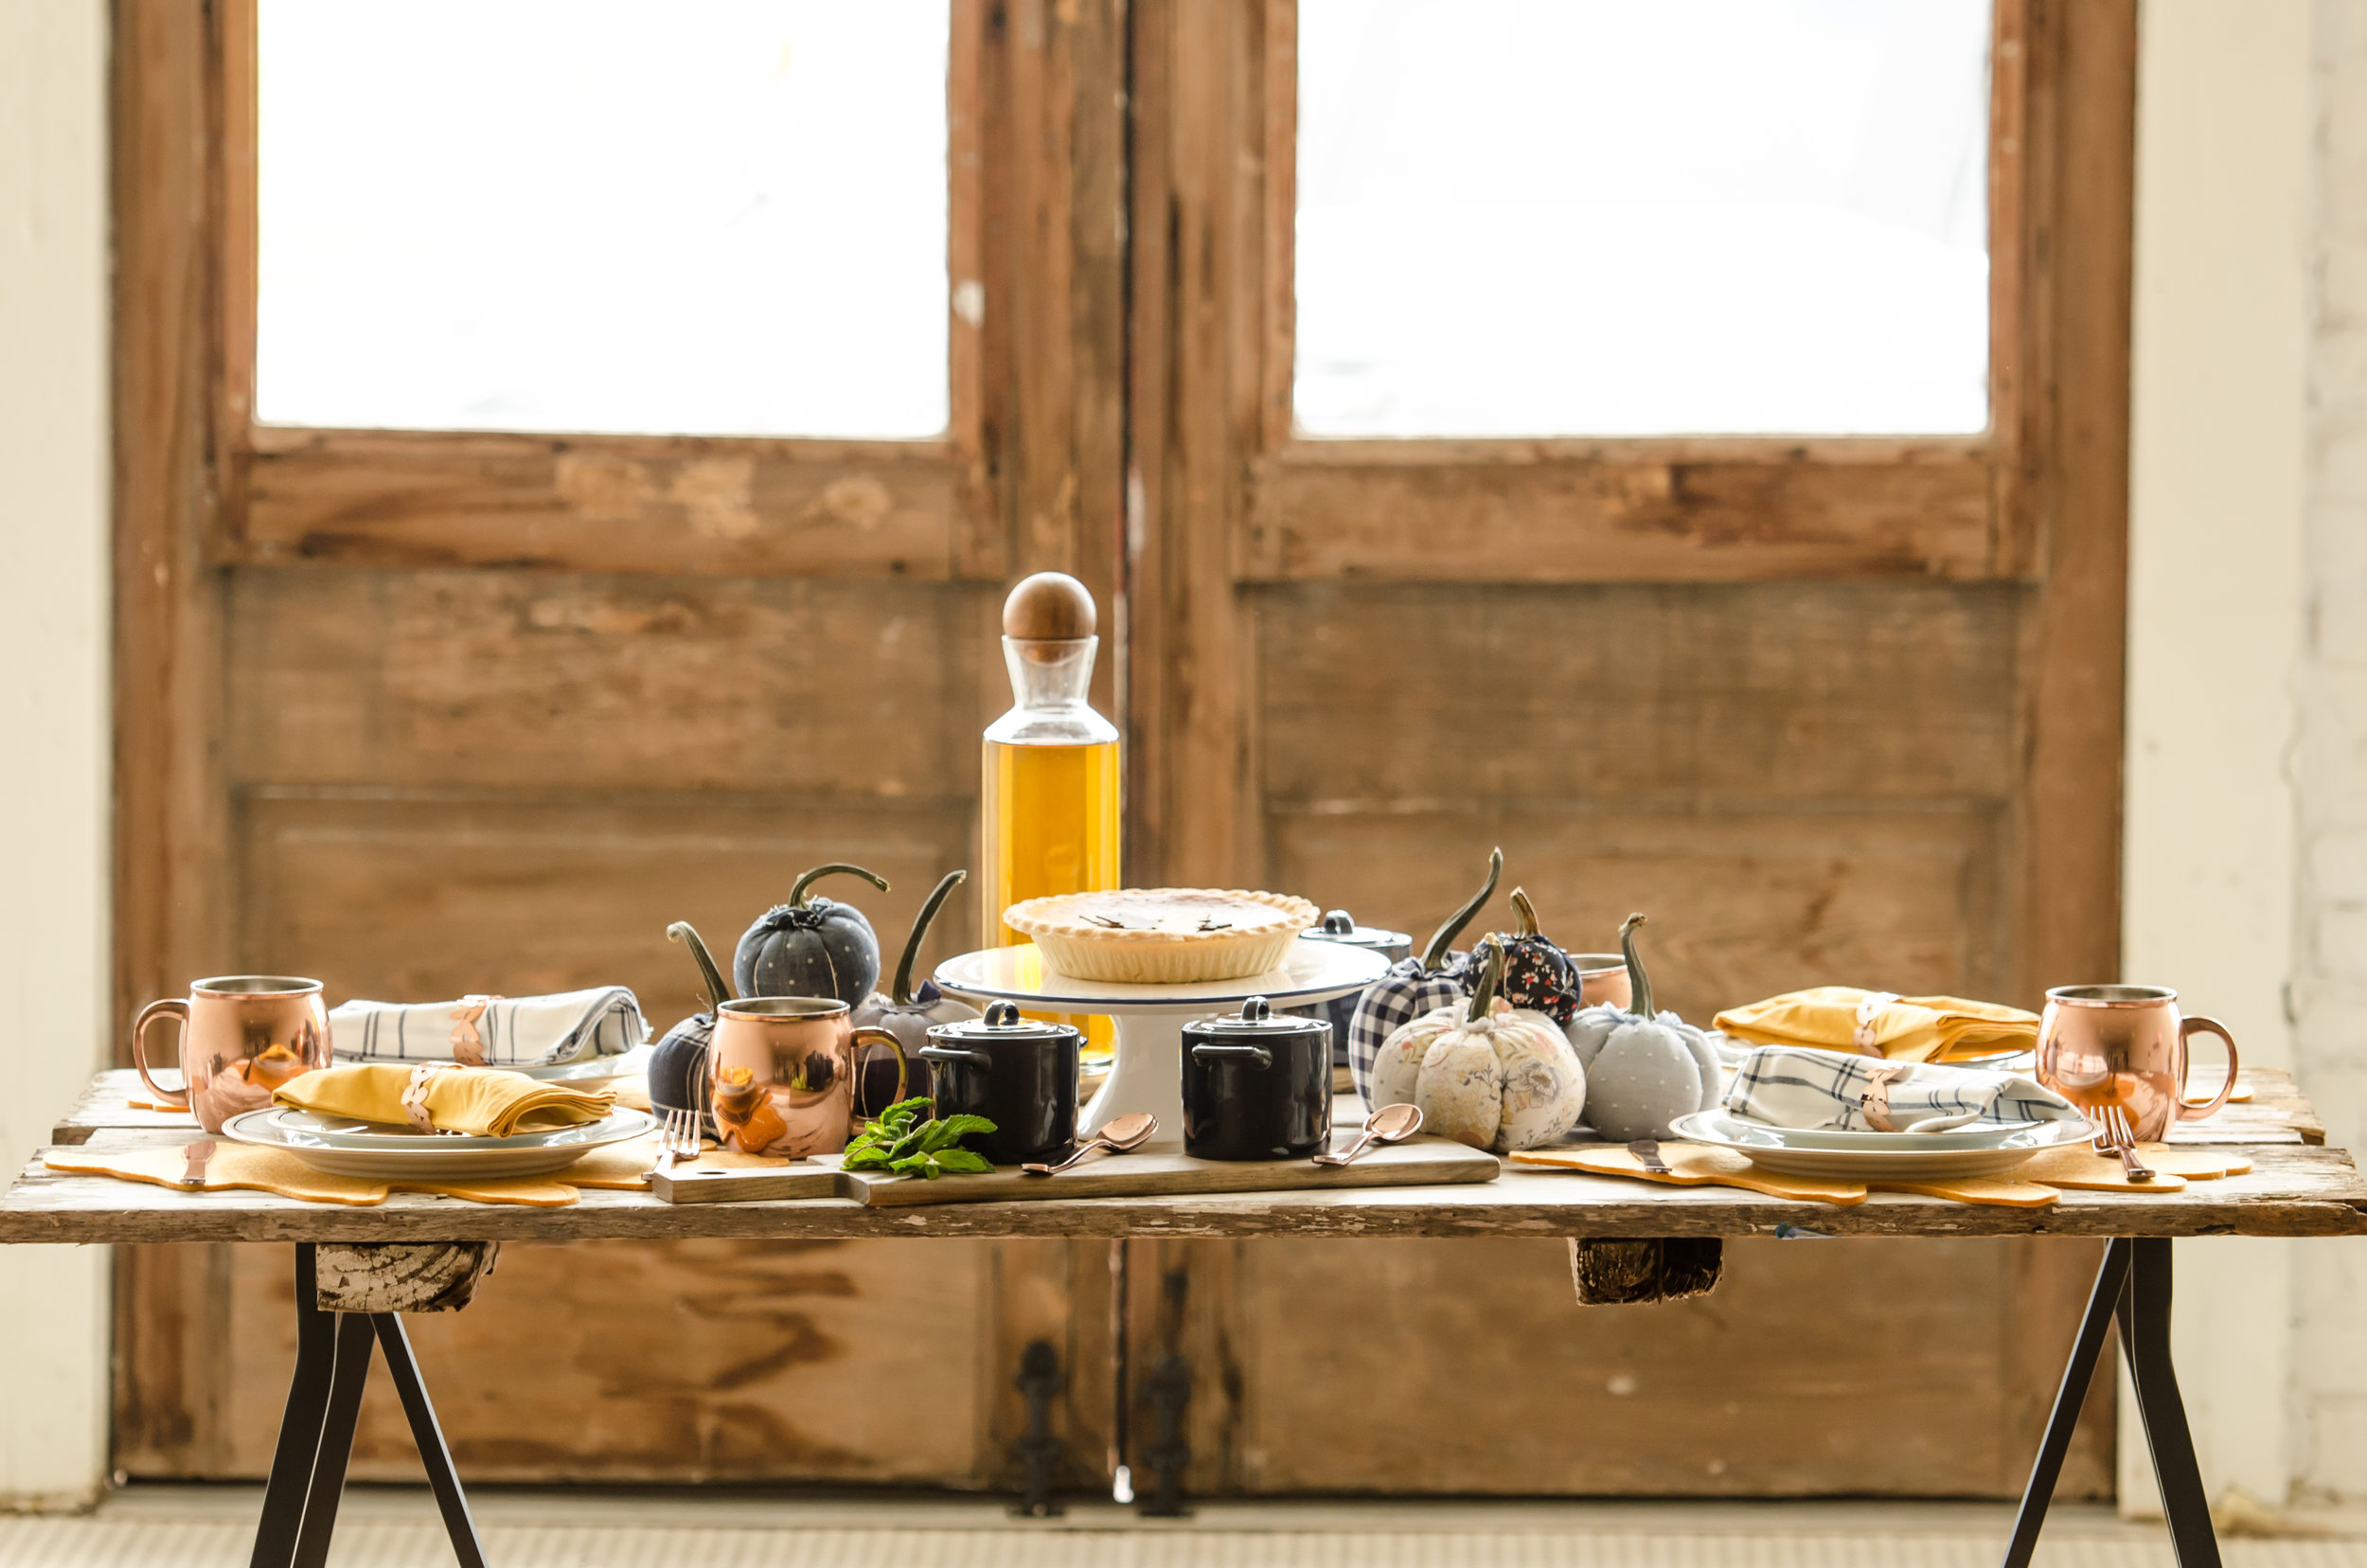 The prettiest of Thanksgiving Table Settings with fabric pumpkins for decorations, leaf placemats, cutting boards for serving the sides and die cut leaf napkin rings / see more Thanksgiving Pictures from party planner, Mint Event Design in Austin, Texas on www.minteventdesign.com #thanksgiving #thanksgivingdecorations #tablescape #thanksgivingtable #pumpkins #tablesettings #fallparty